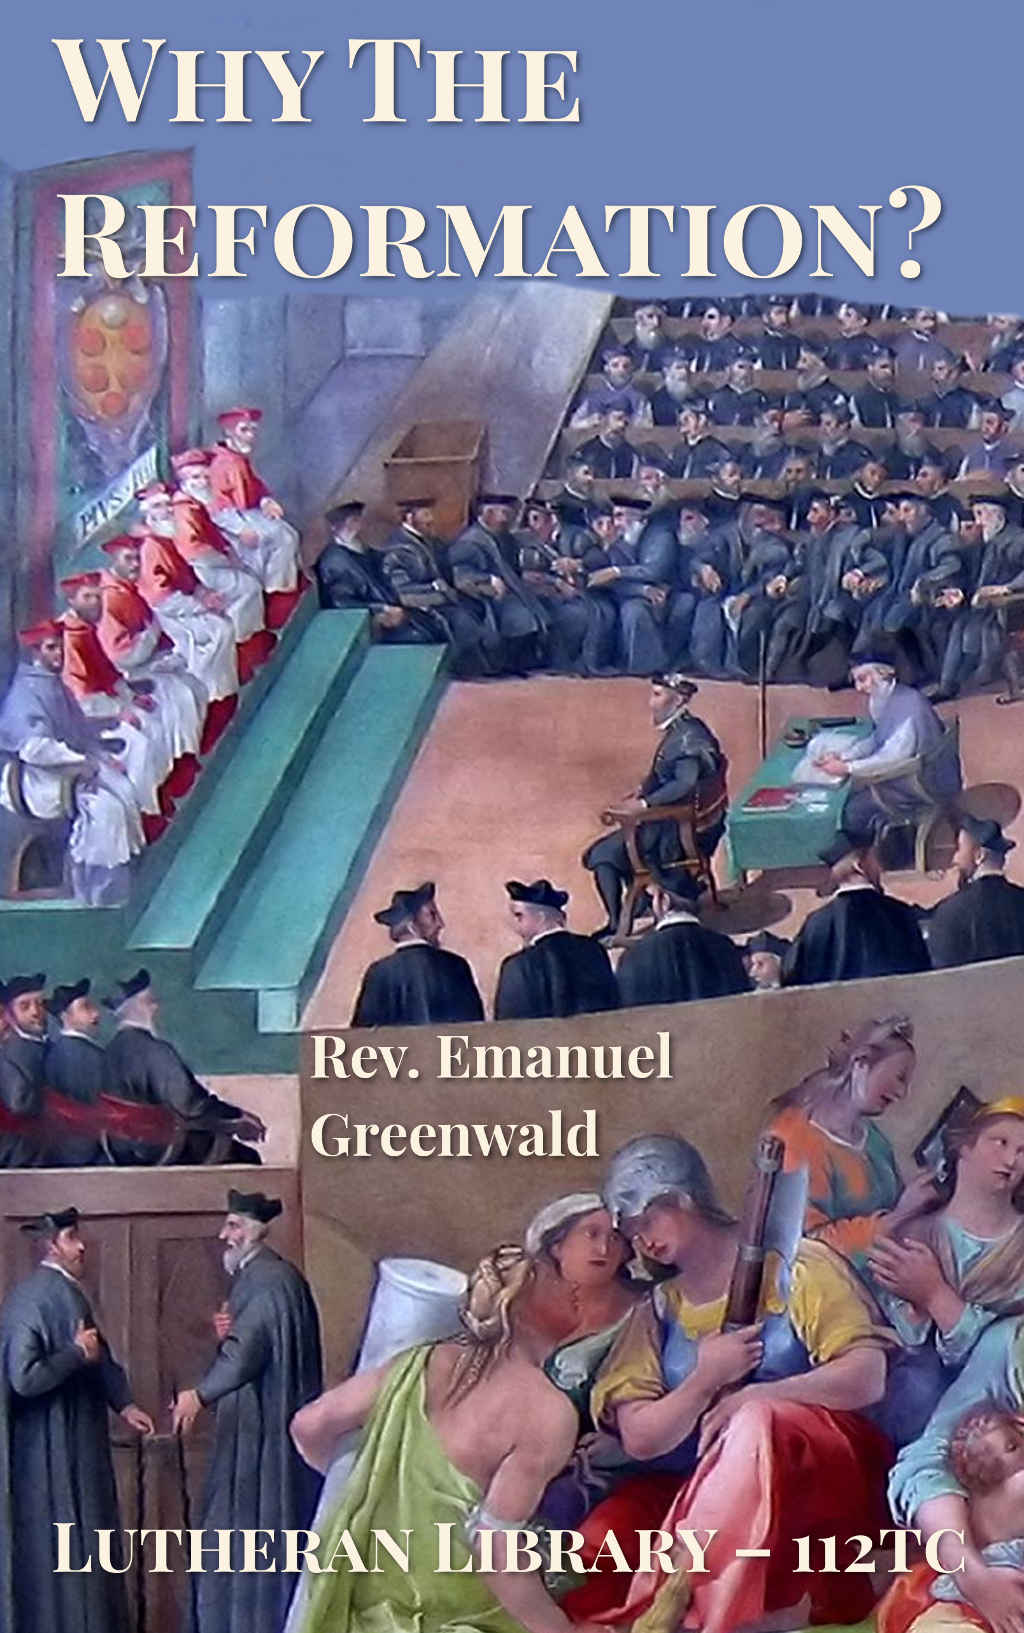 Why The Reformation? by Emanuel Greenwald